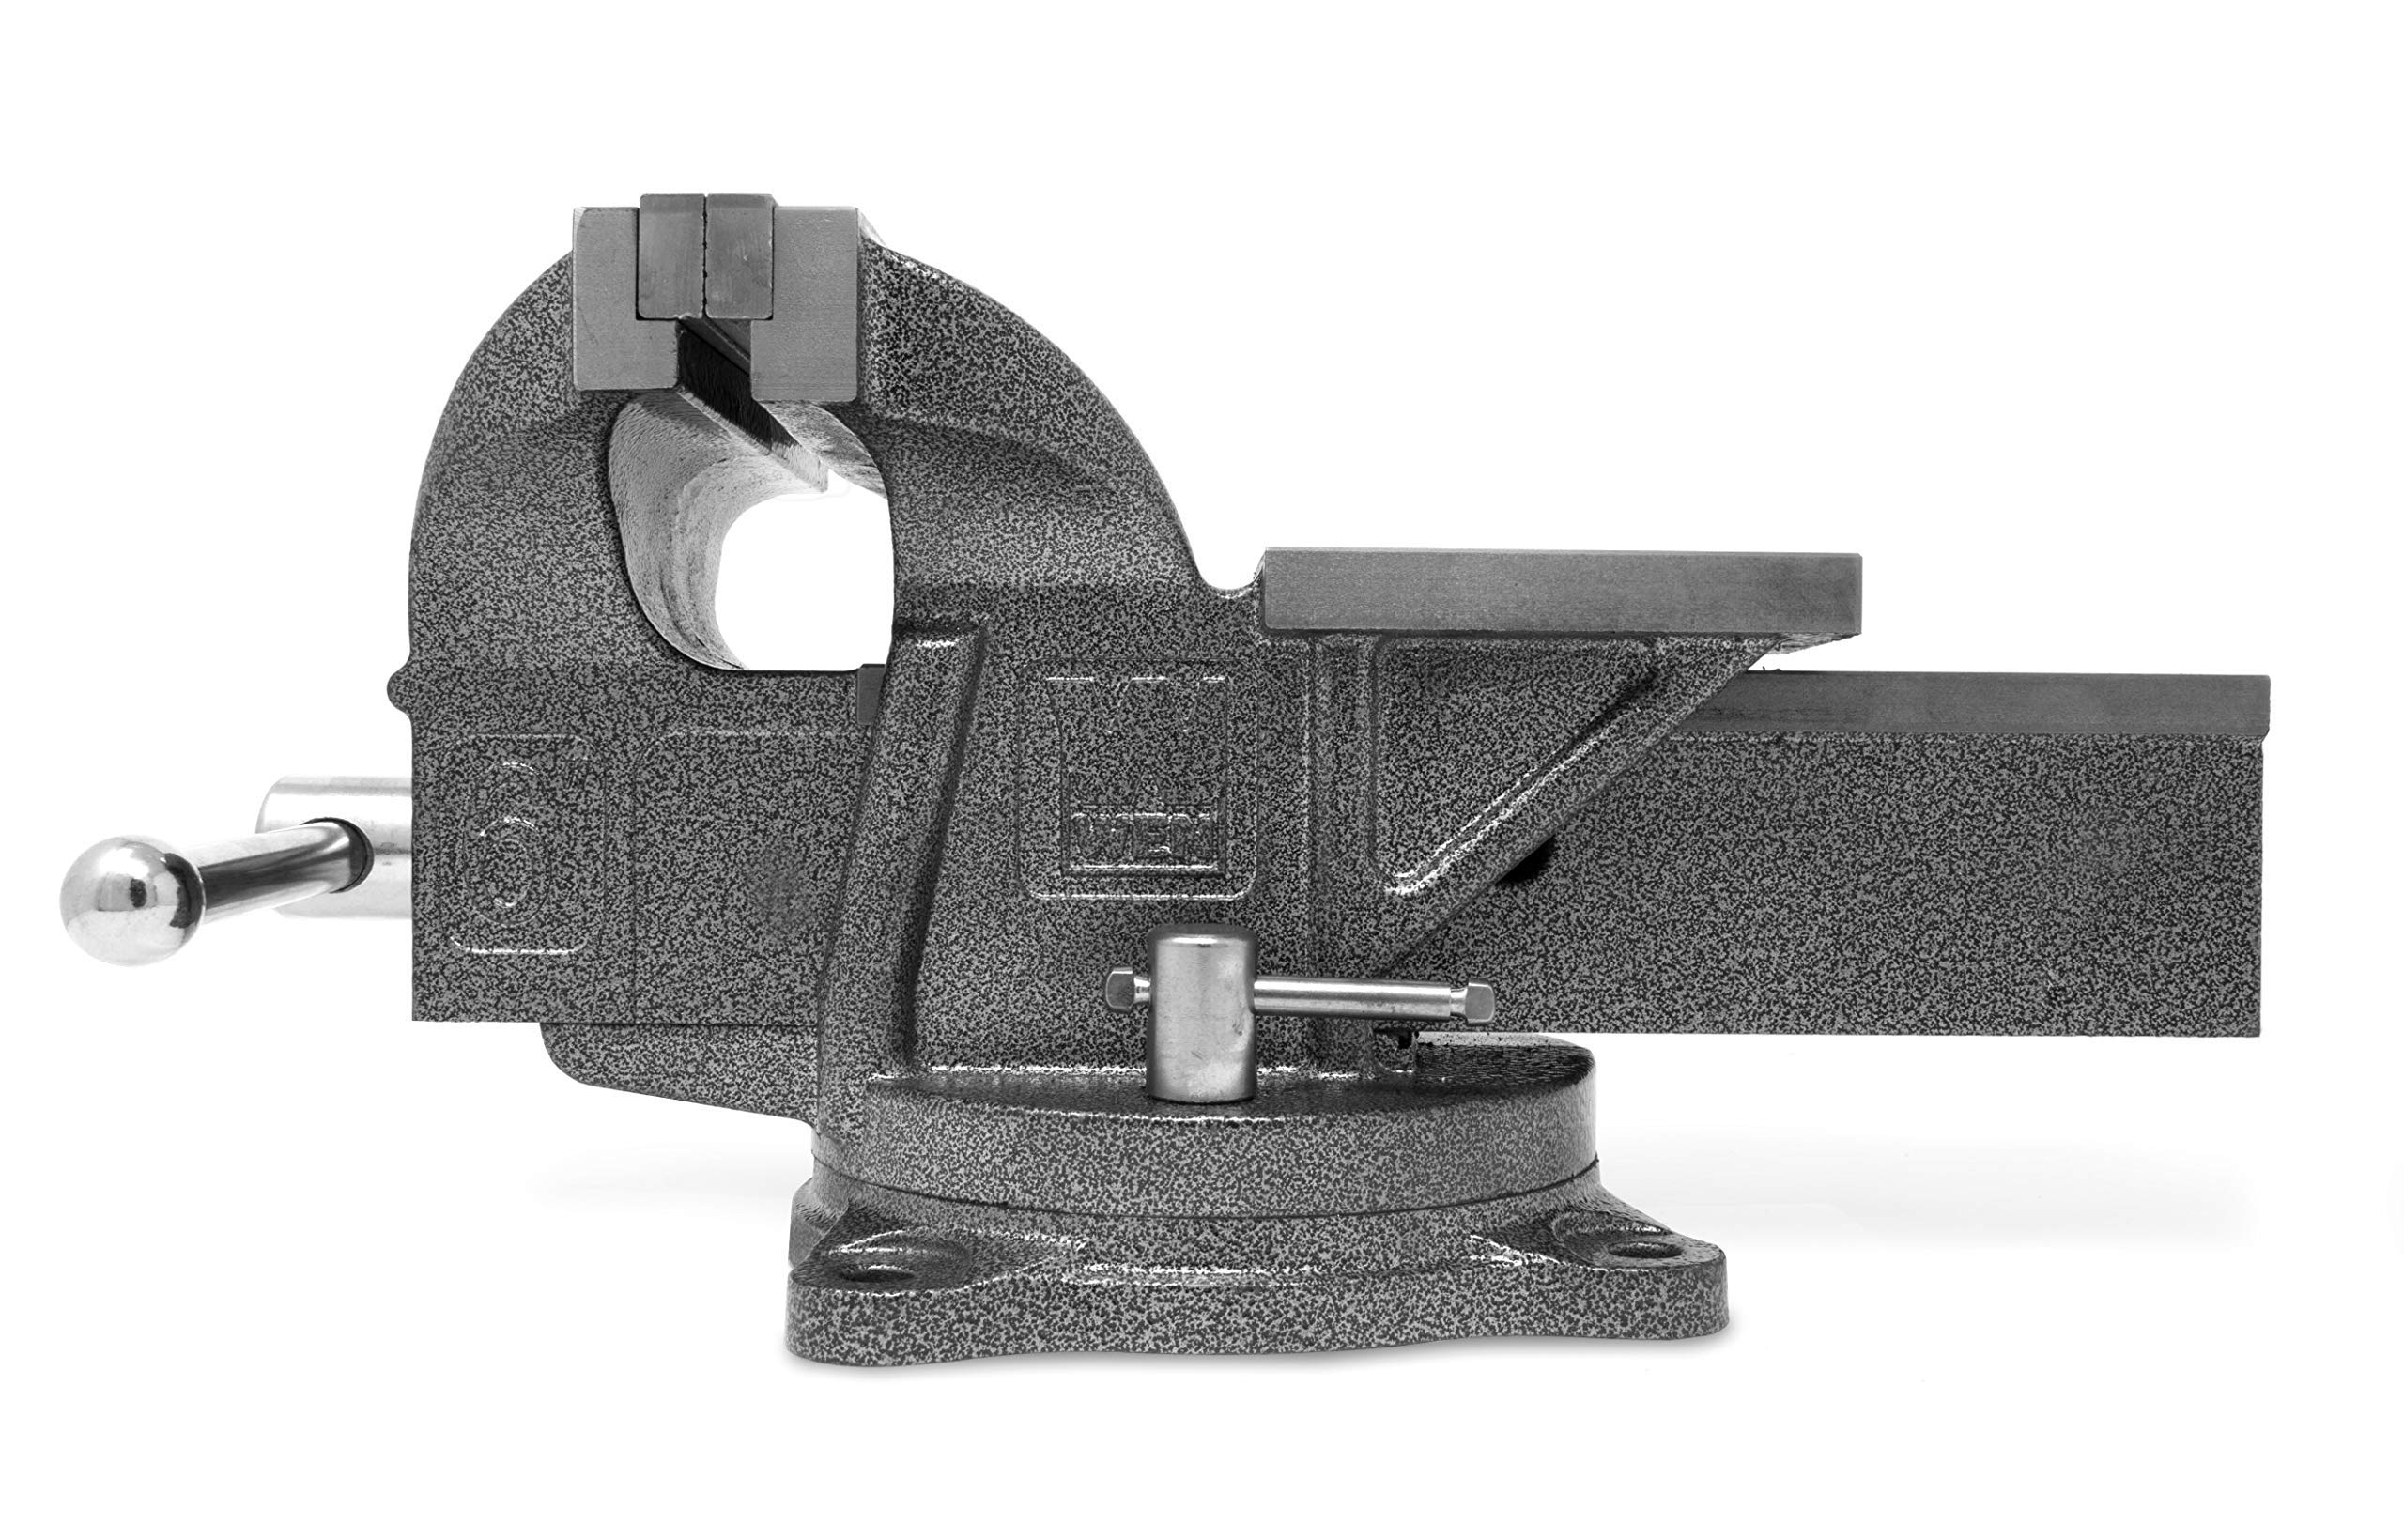 WEN 456BV 6-Inch Heavy Duty Cast Iron Bench Vise with Swivel Base (Renewed) by WEN (Image #3)